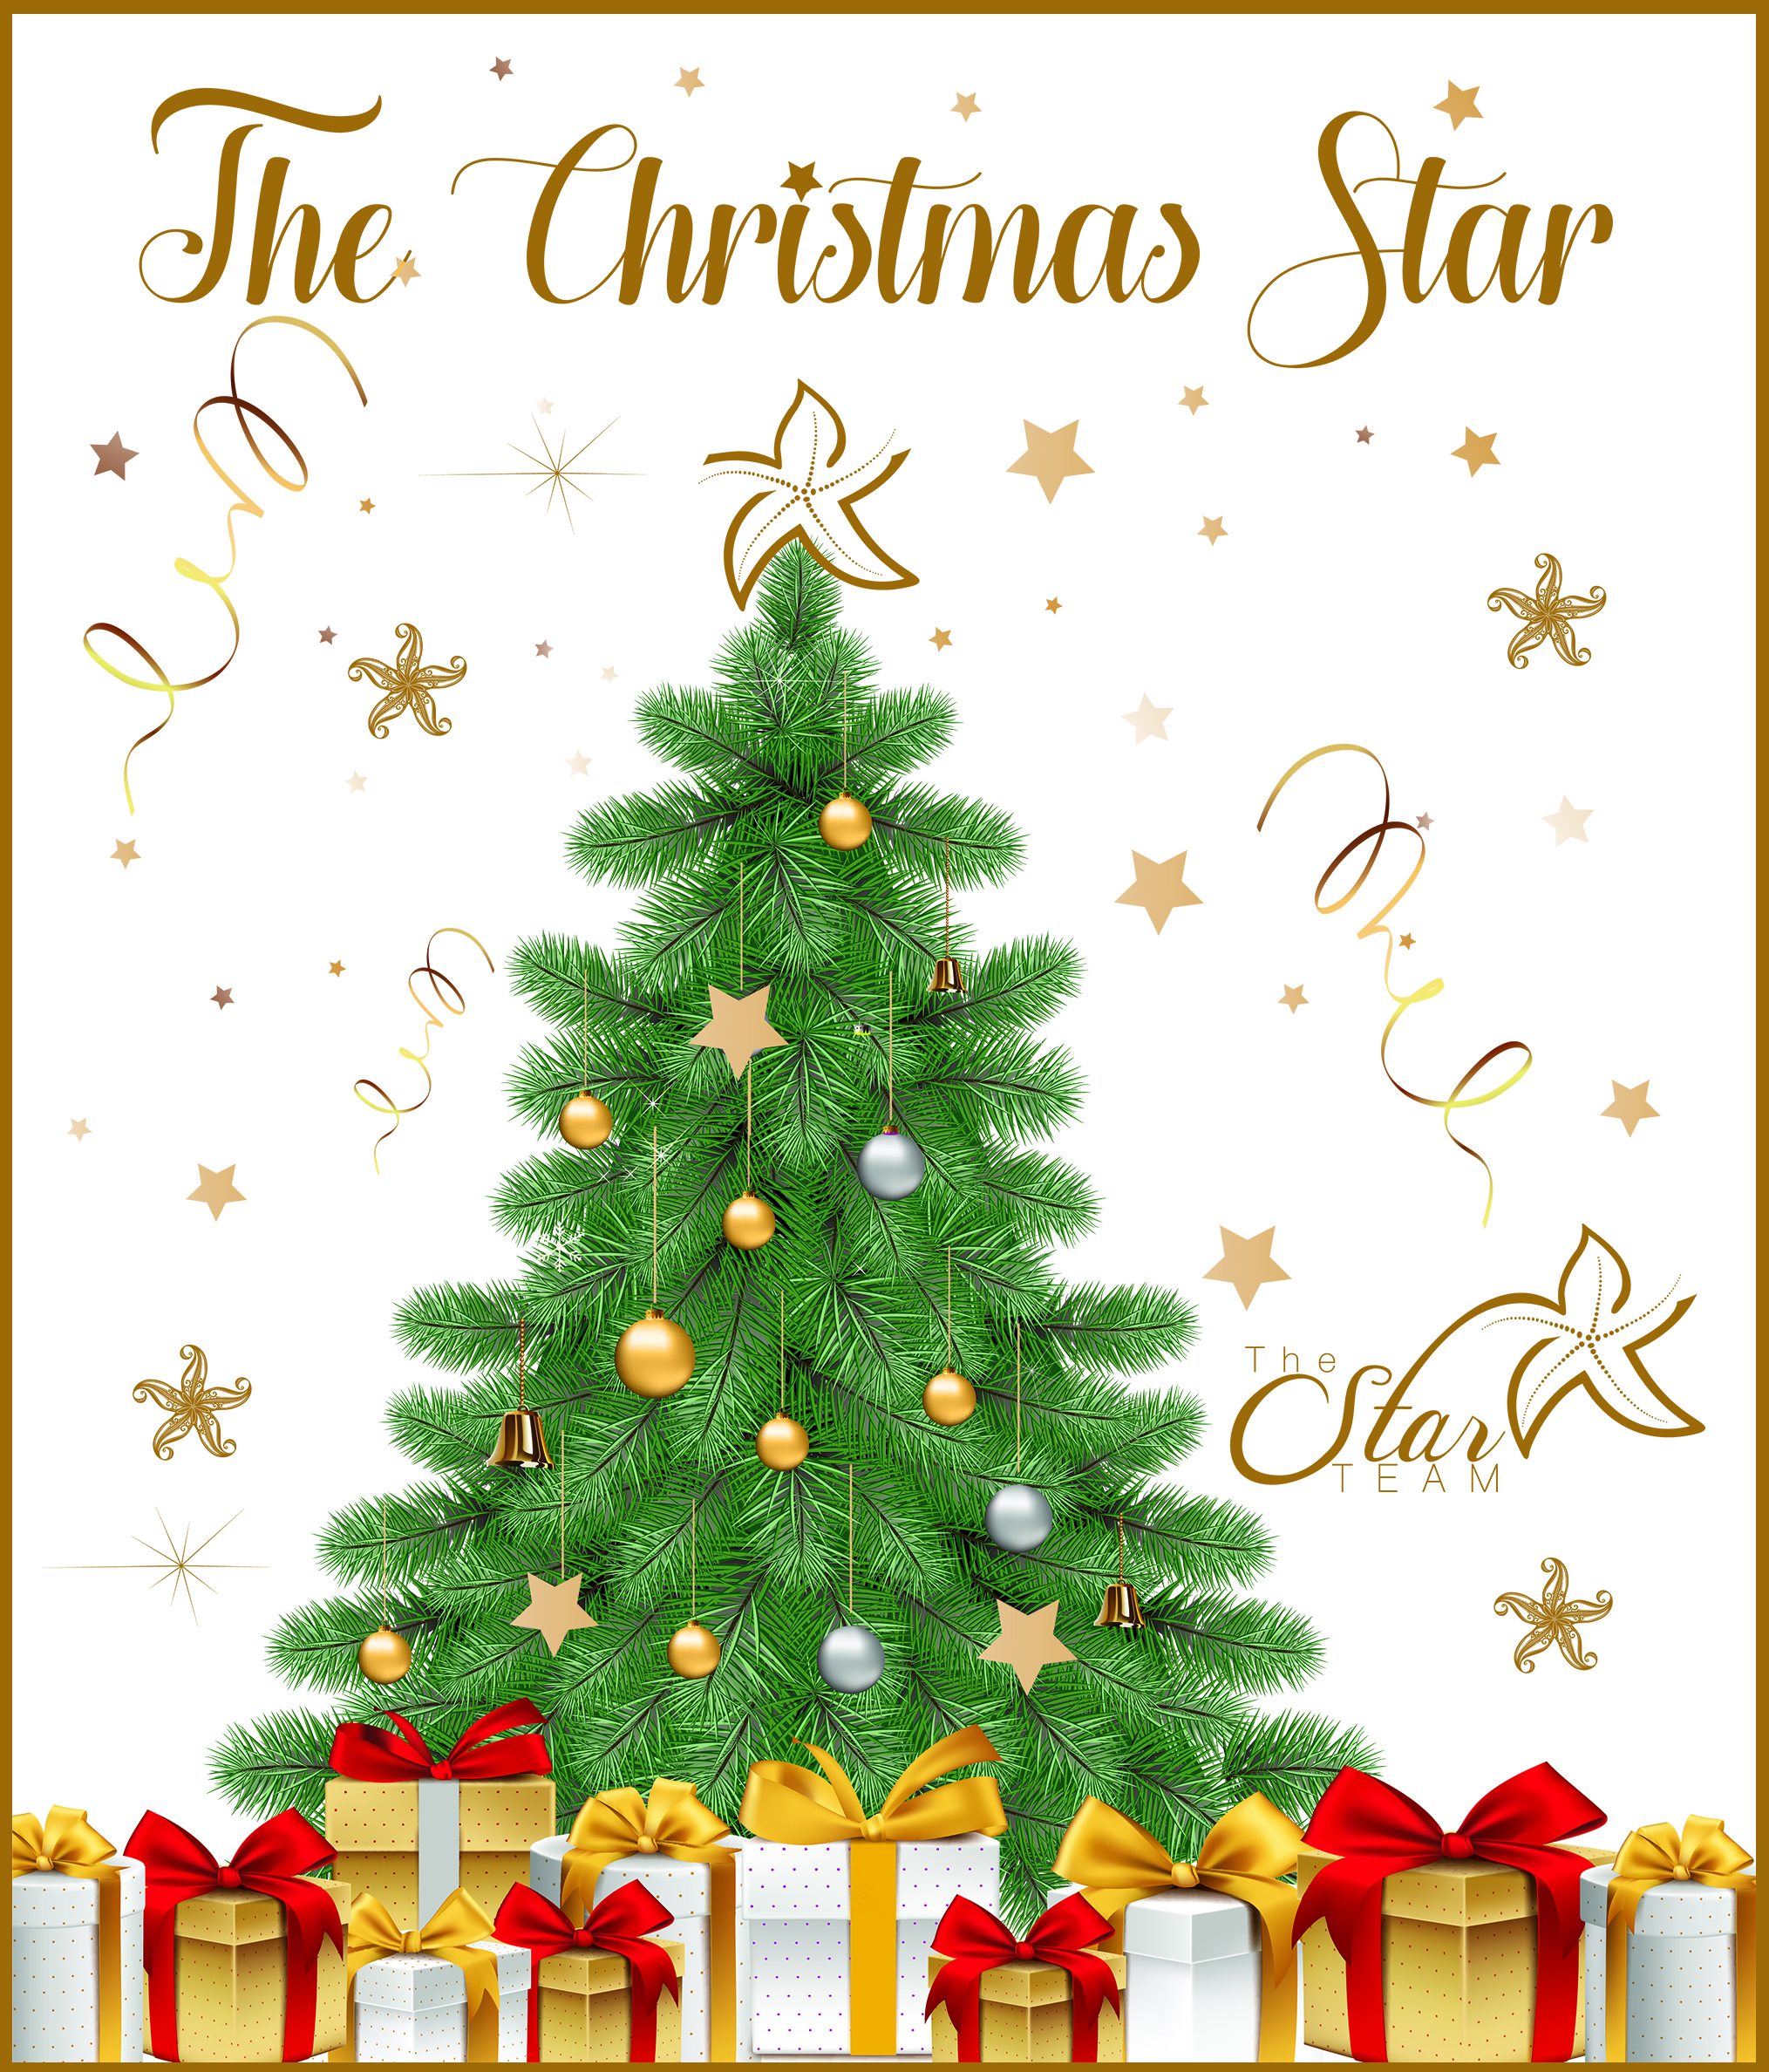 Wish List for The Christmas Star